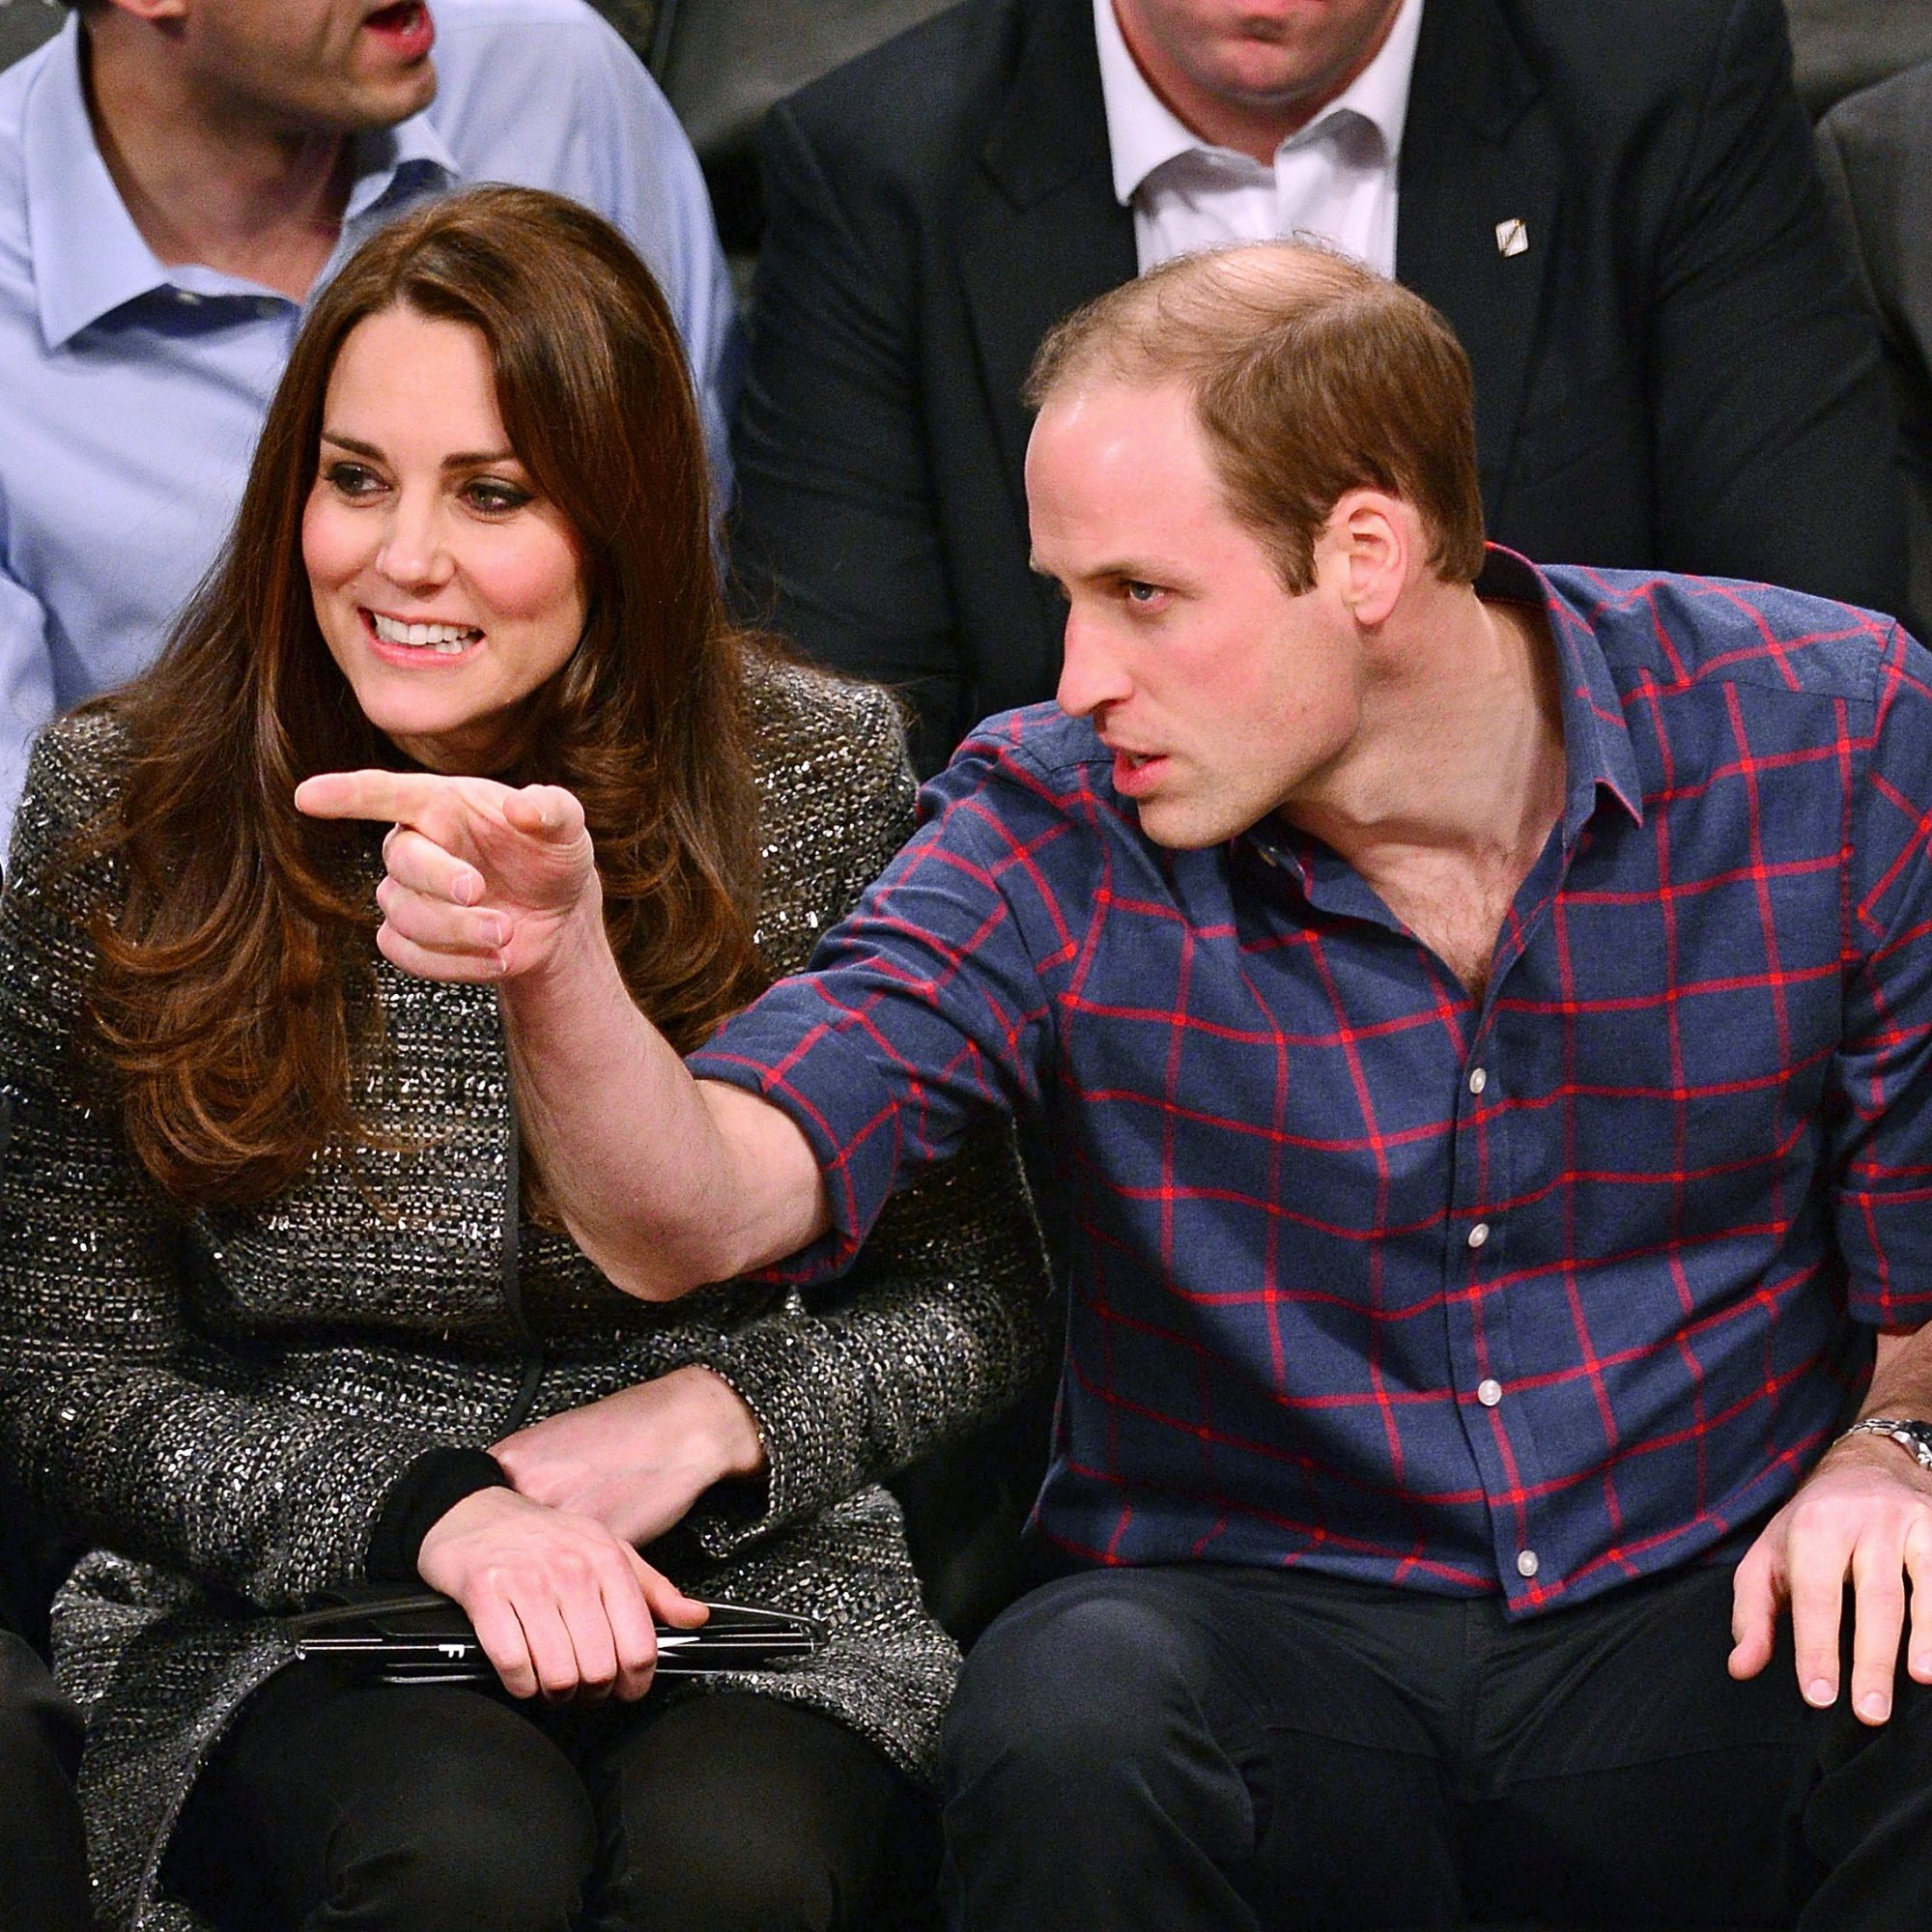 The Duke And Duchess Of Cambridge Attend Cleveland Cavaliers v. Brooklyn Nets